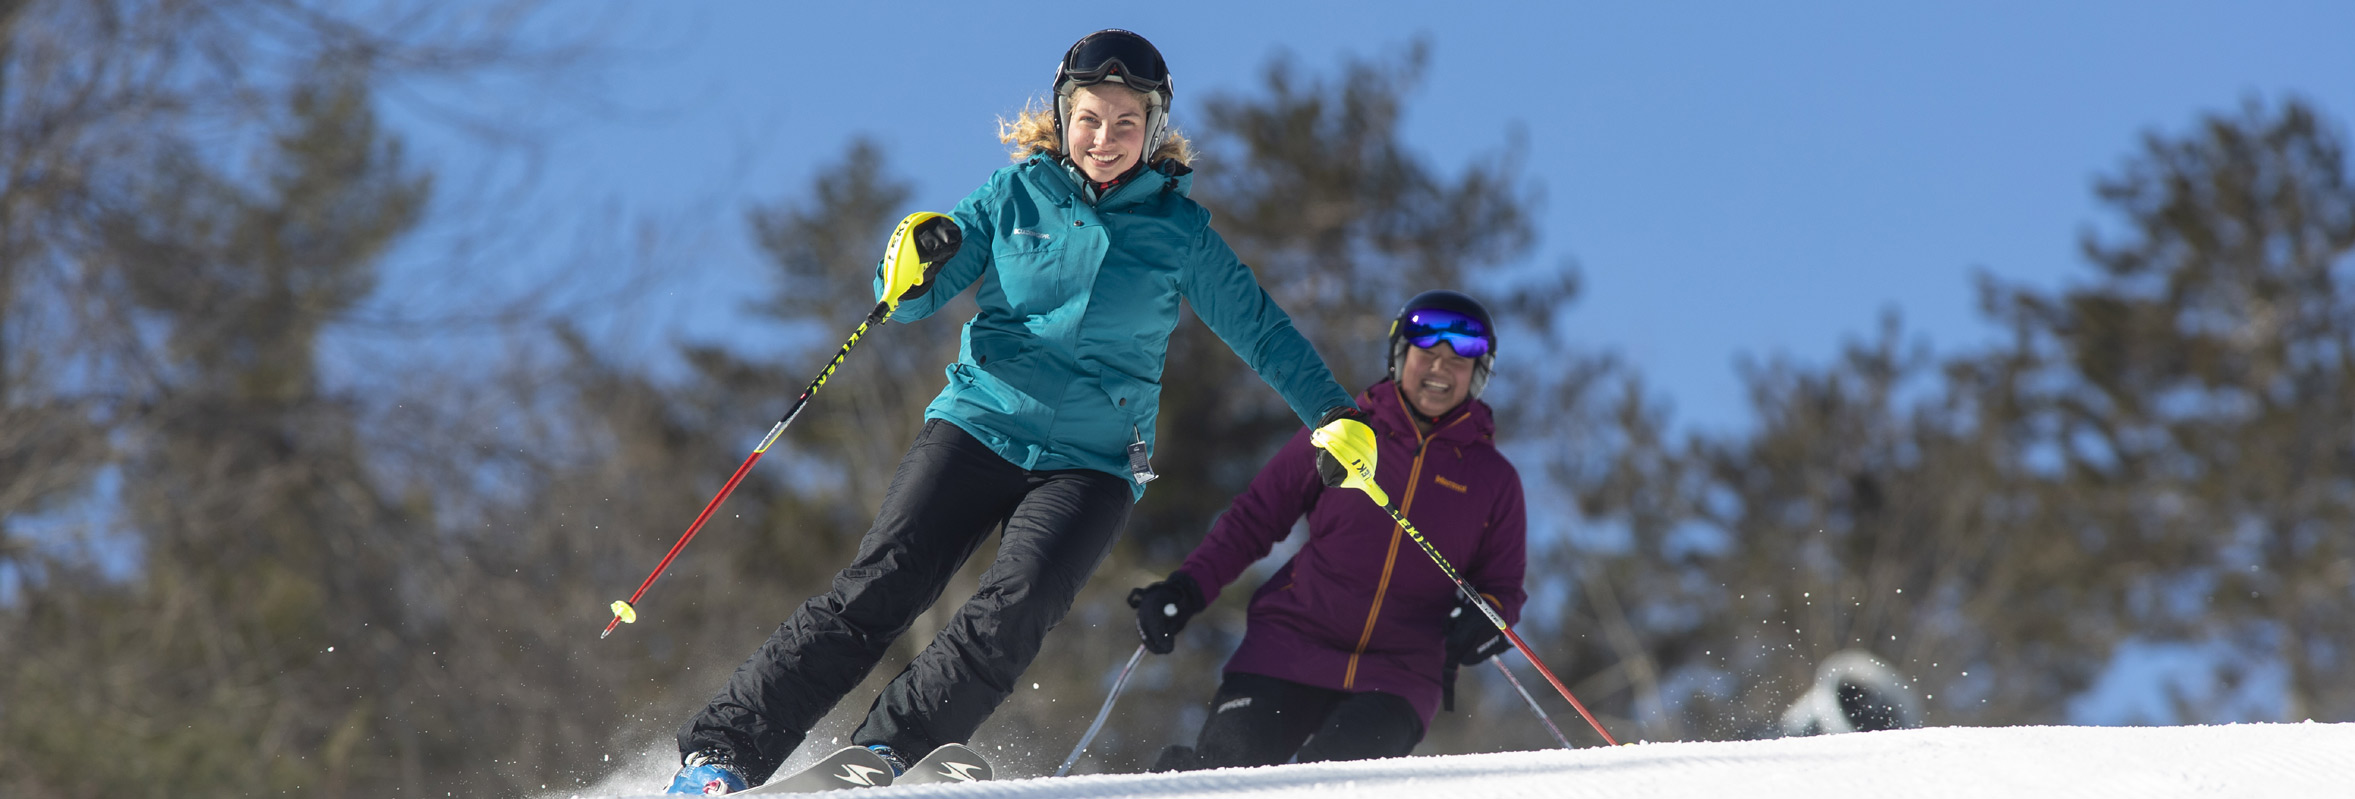 Photo of two skiers